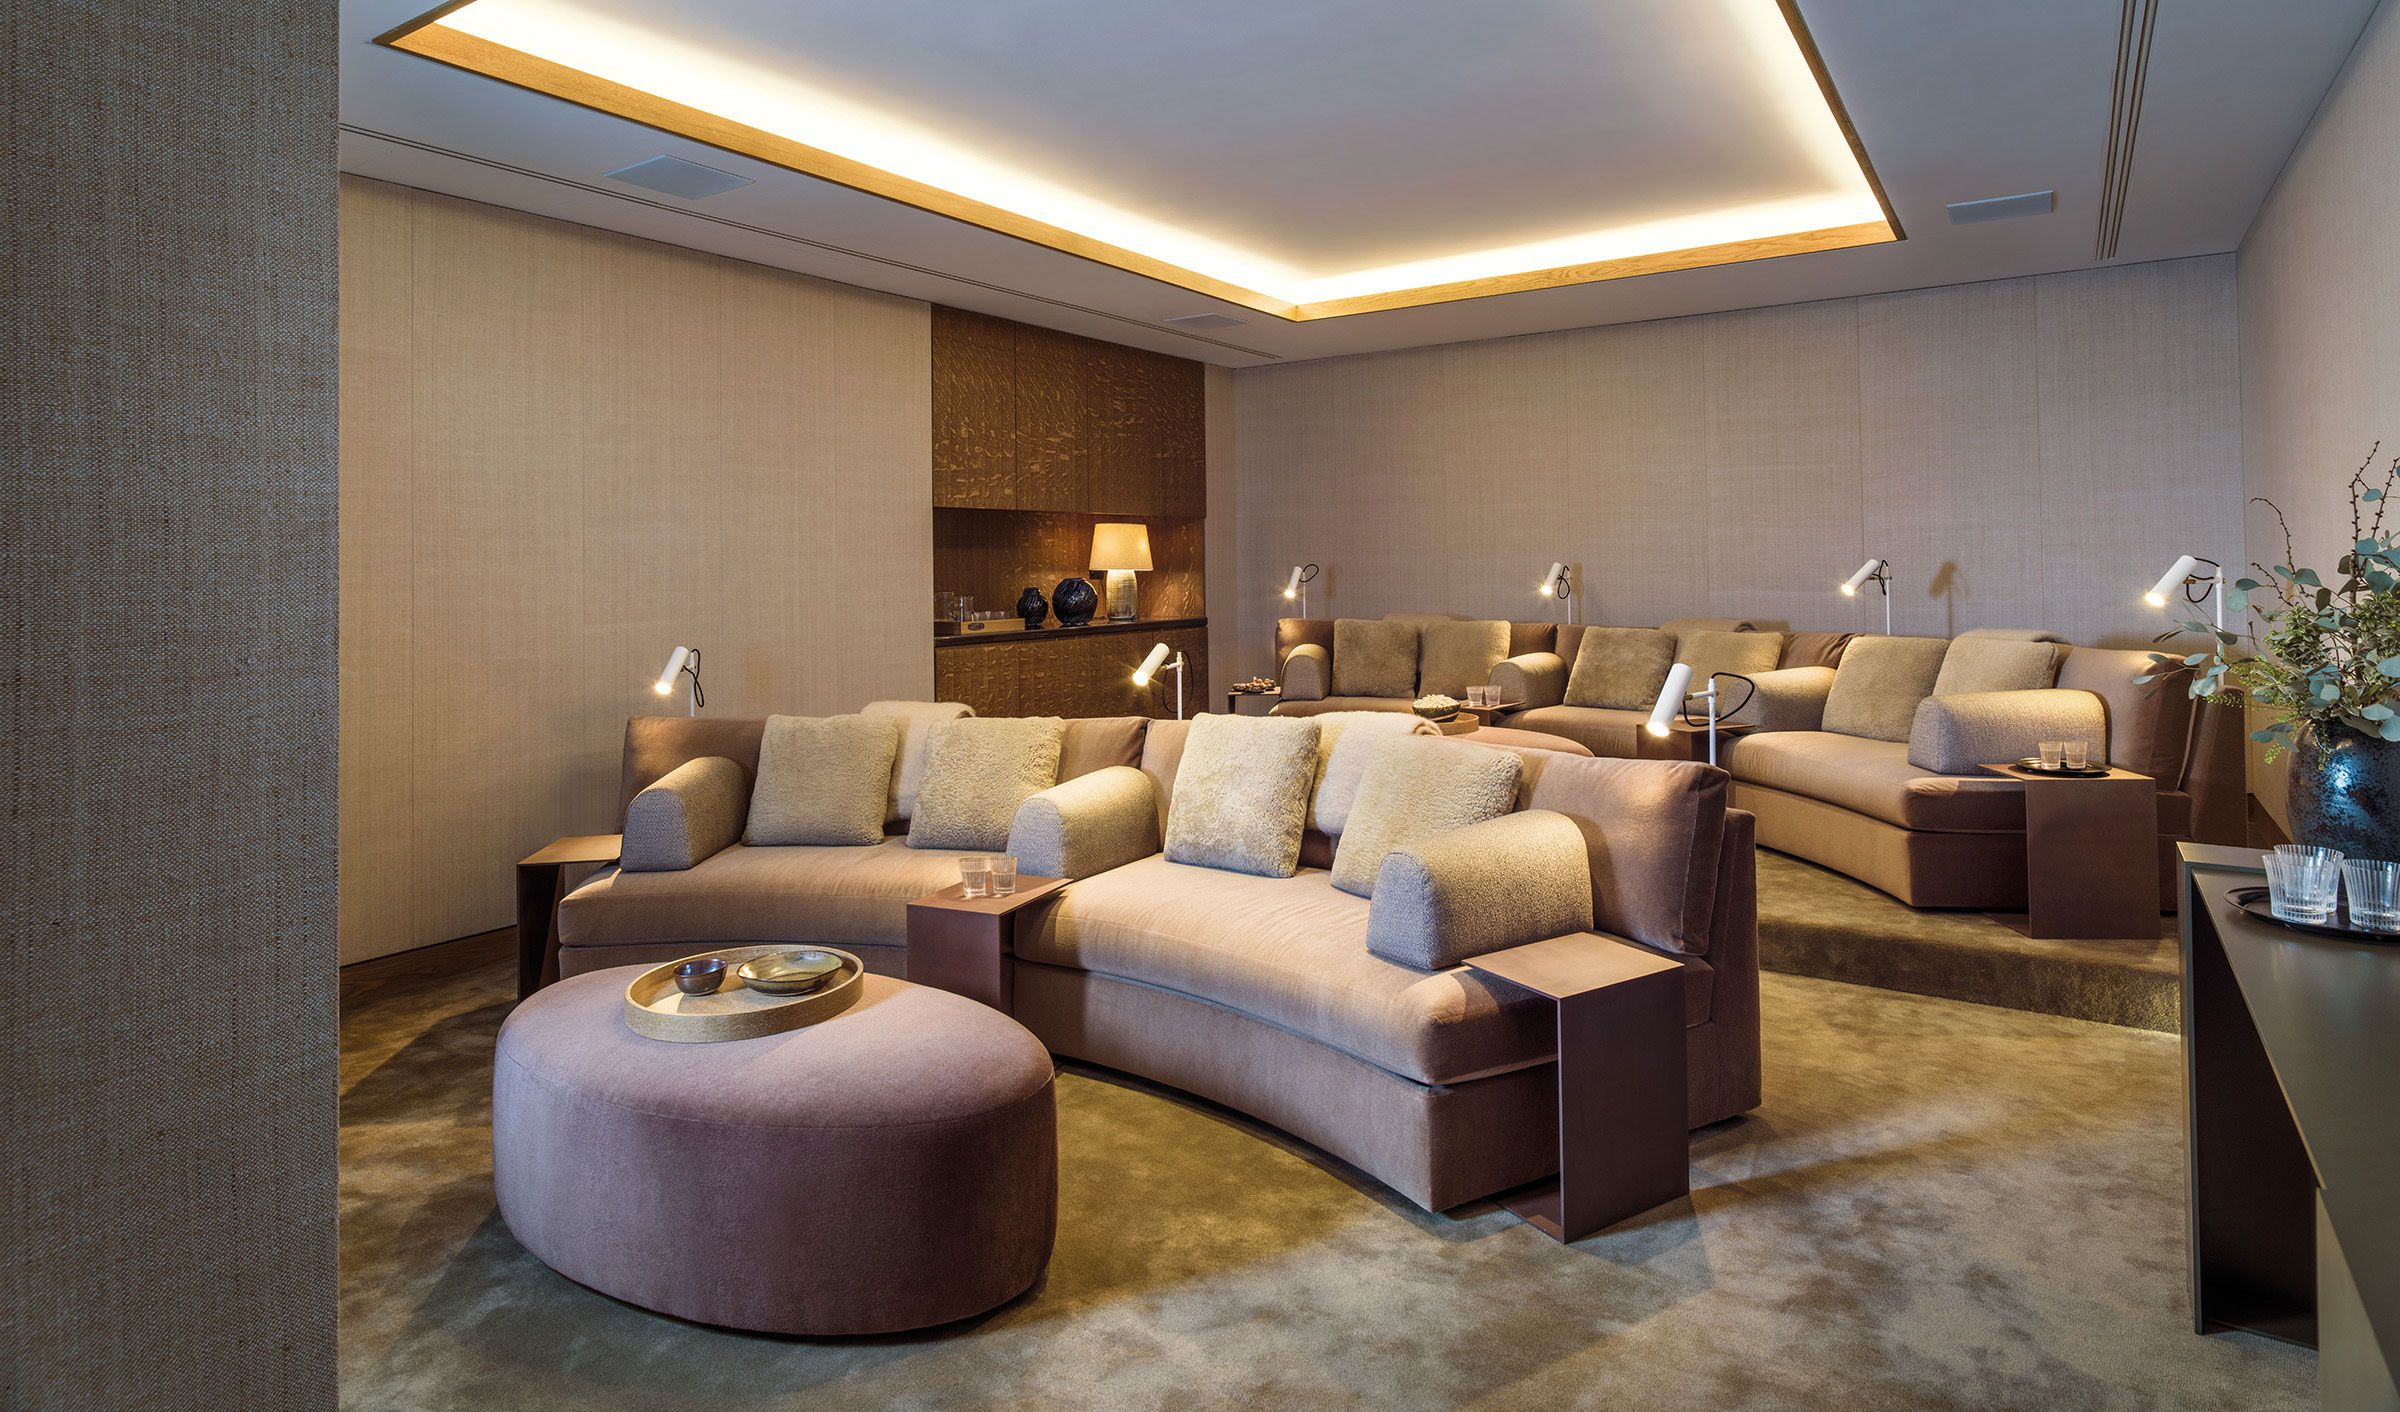 Residents Cinema Room Featuring 98 Wide 4K Ultra High Definition Screen